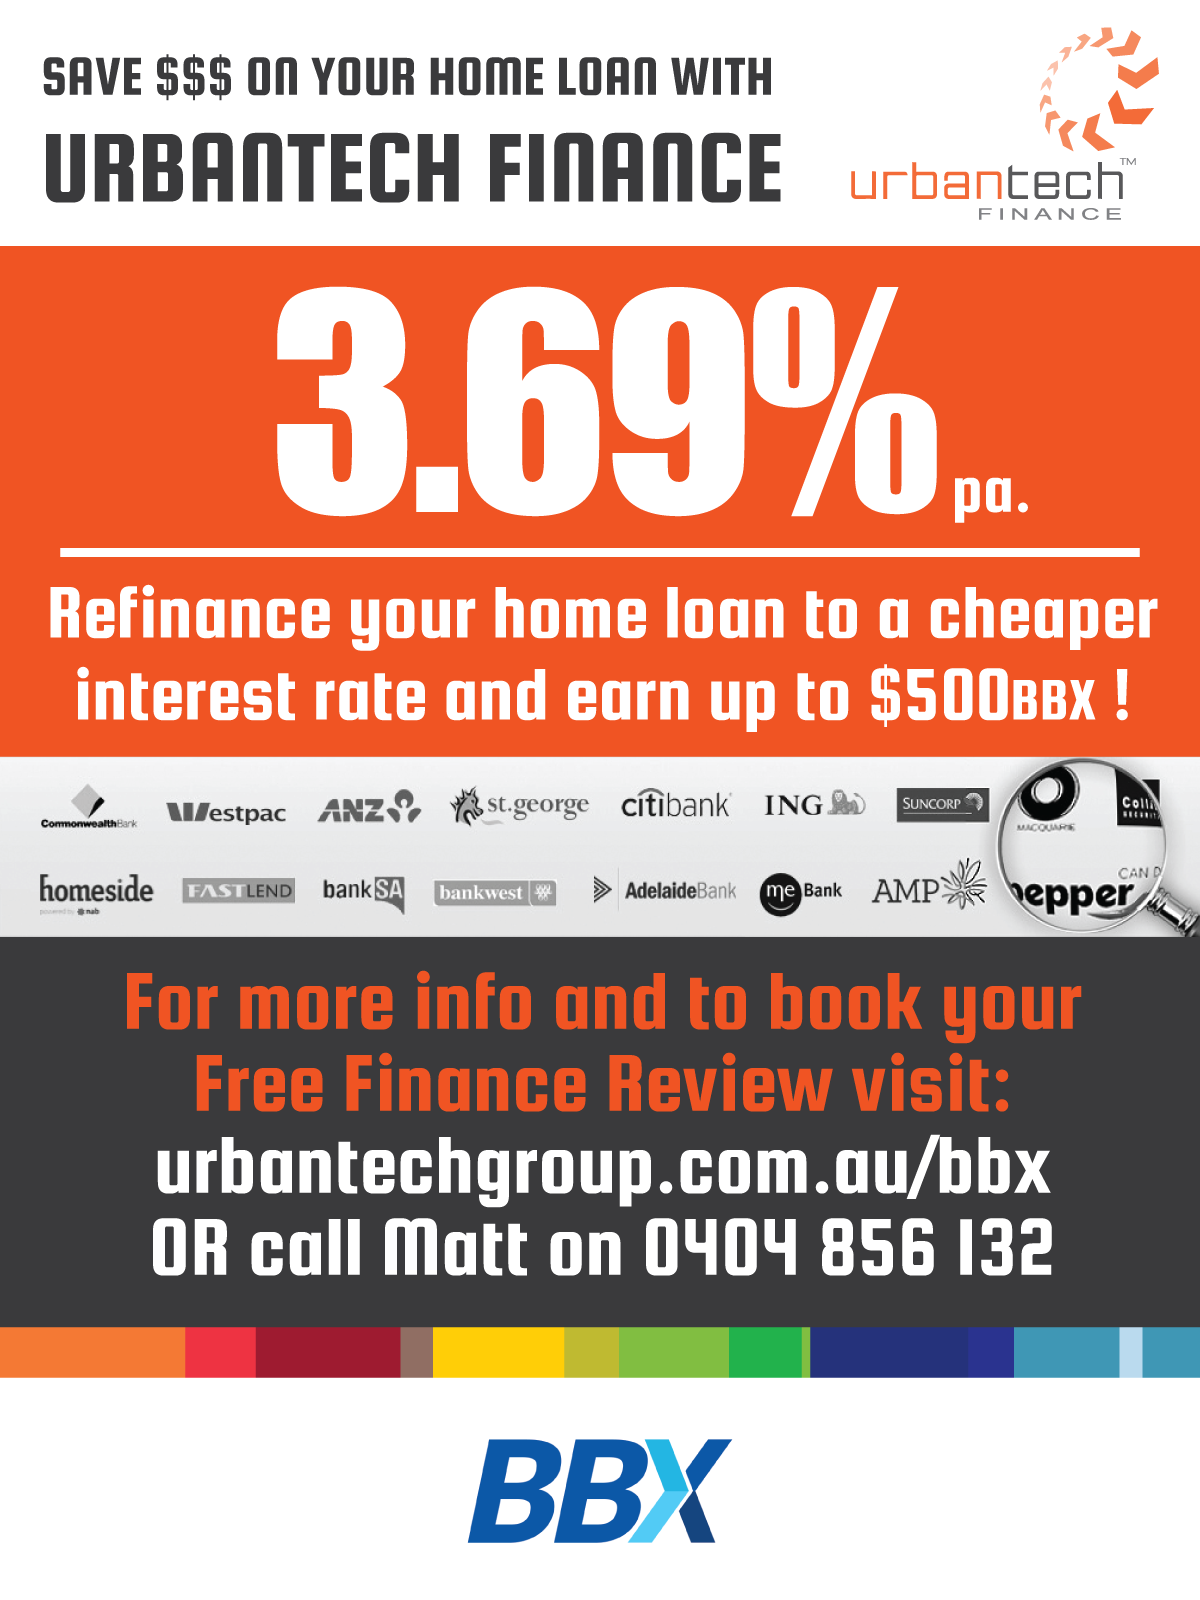 refinance your home loan to a cheaper interest rate and earn up to